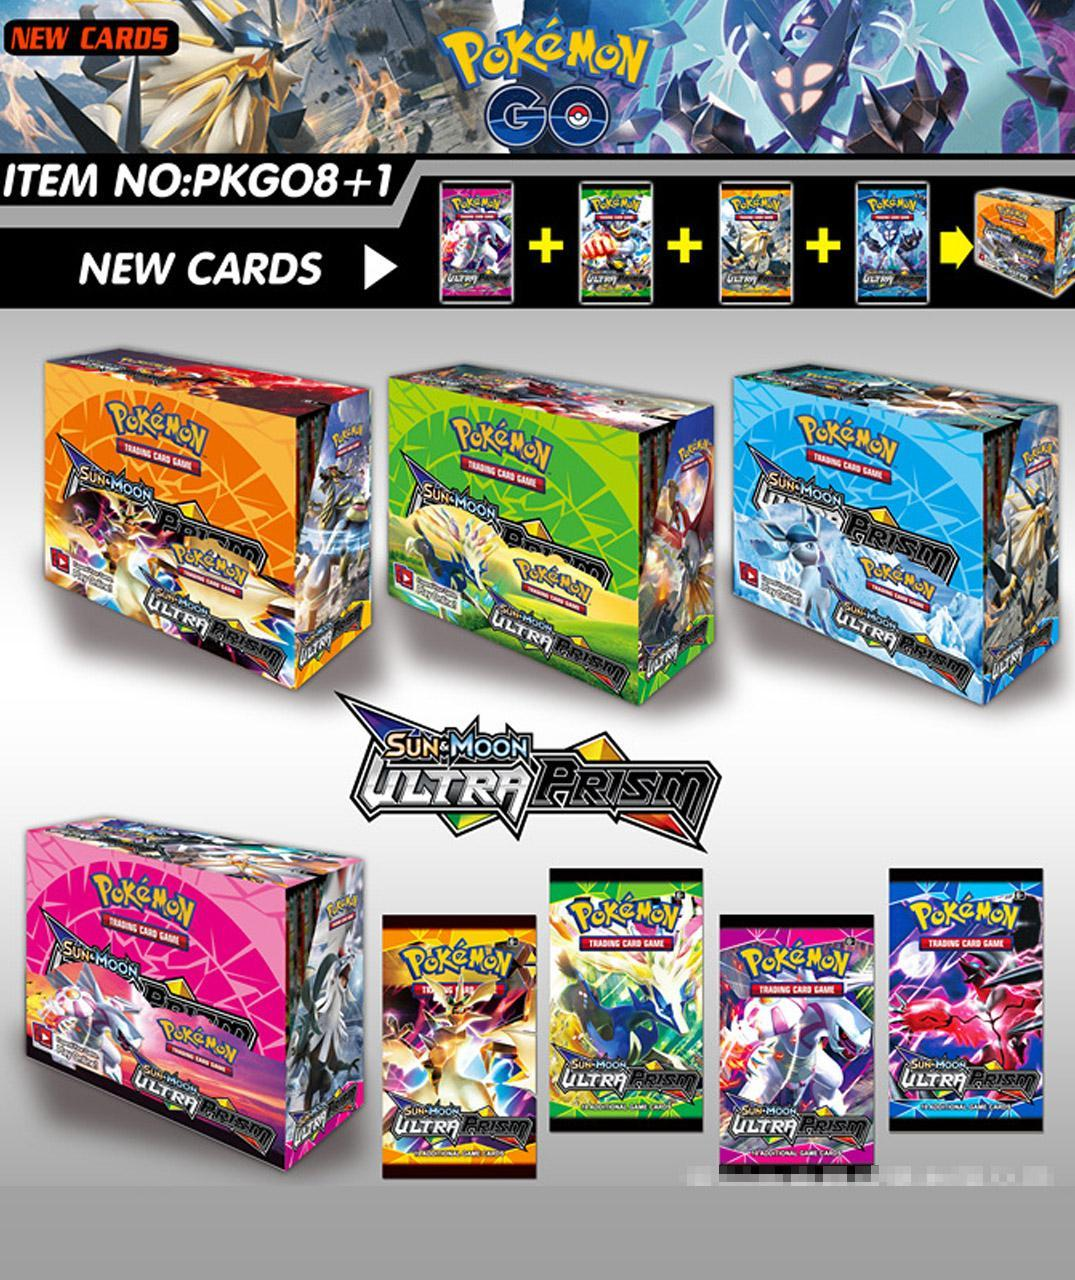 new-324pcs-box-font-b-pokemon-b-font-card-tcg-sun-moon-ultra-prism-36-pack-booster-box-collecting-trading-cards-game